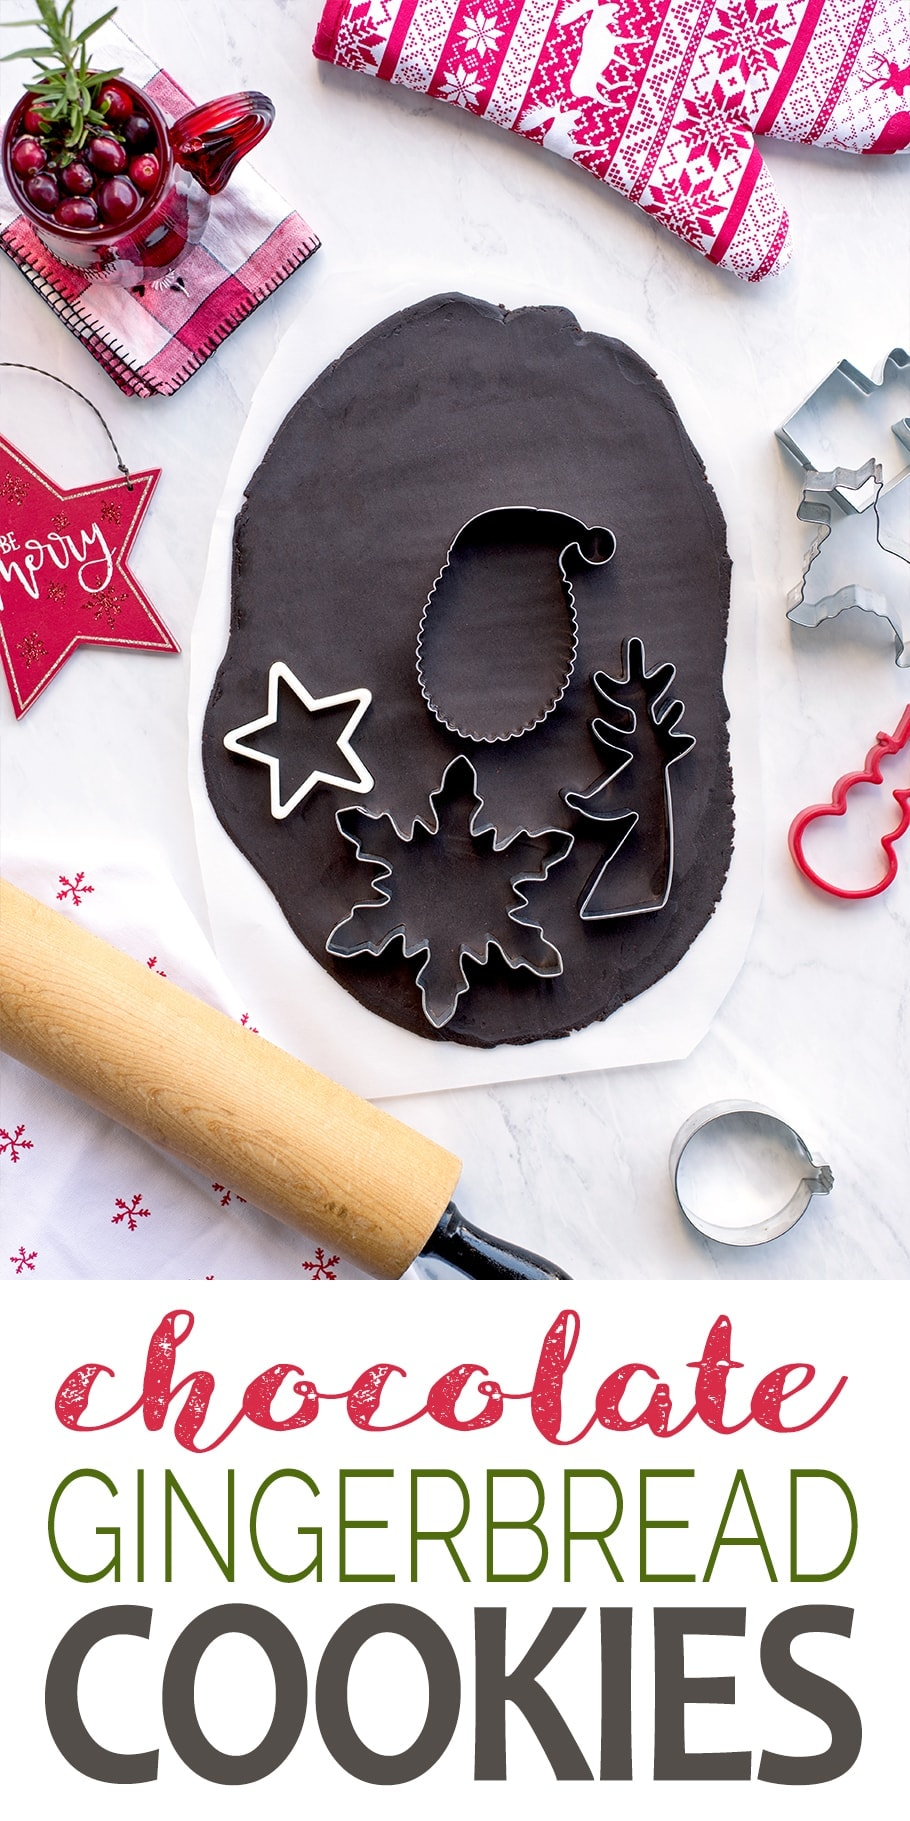 Chocolate Gingerbread Cookies Pin 3 - Cut Out Chocolate Gingerbread Cookies